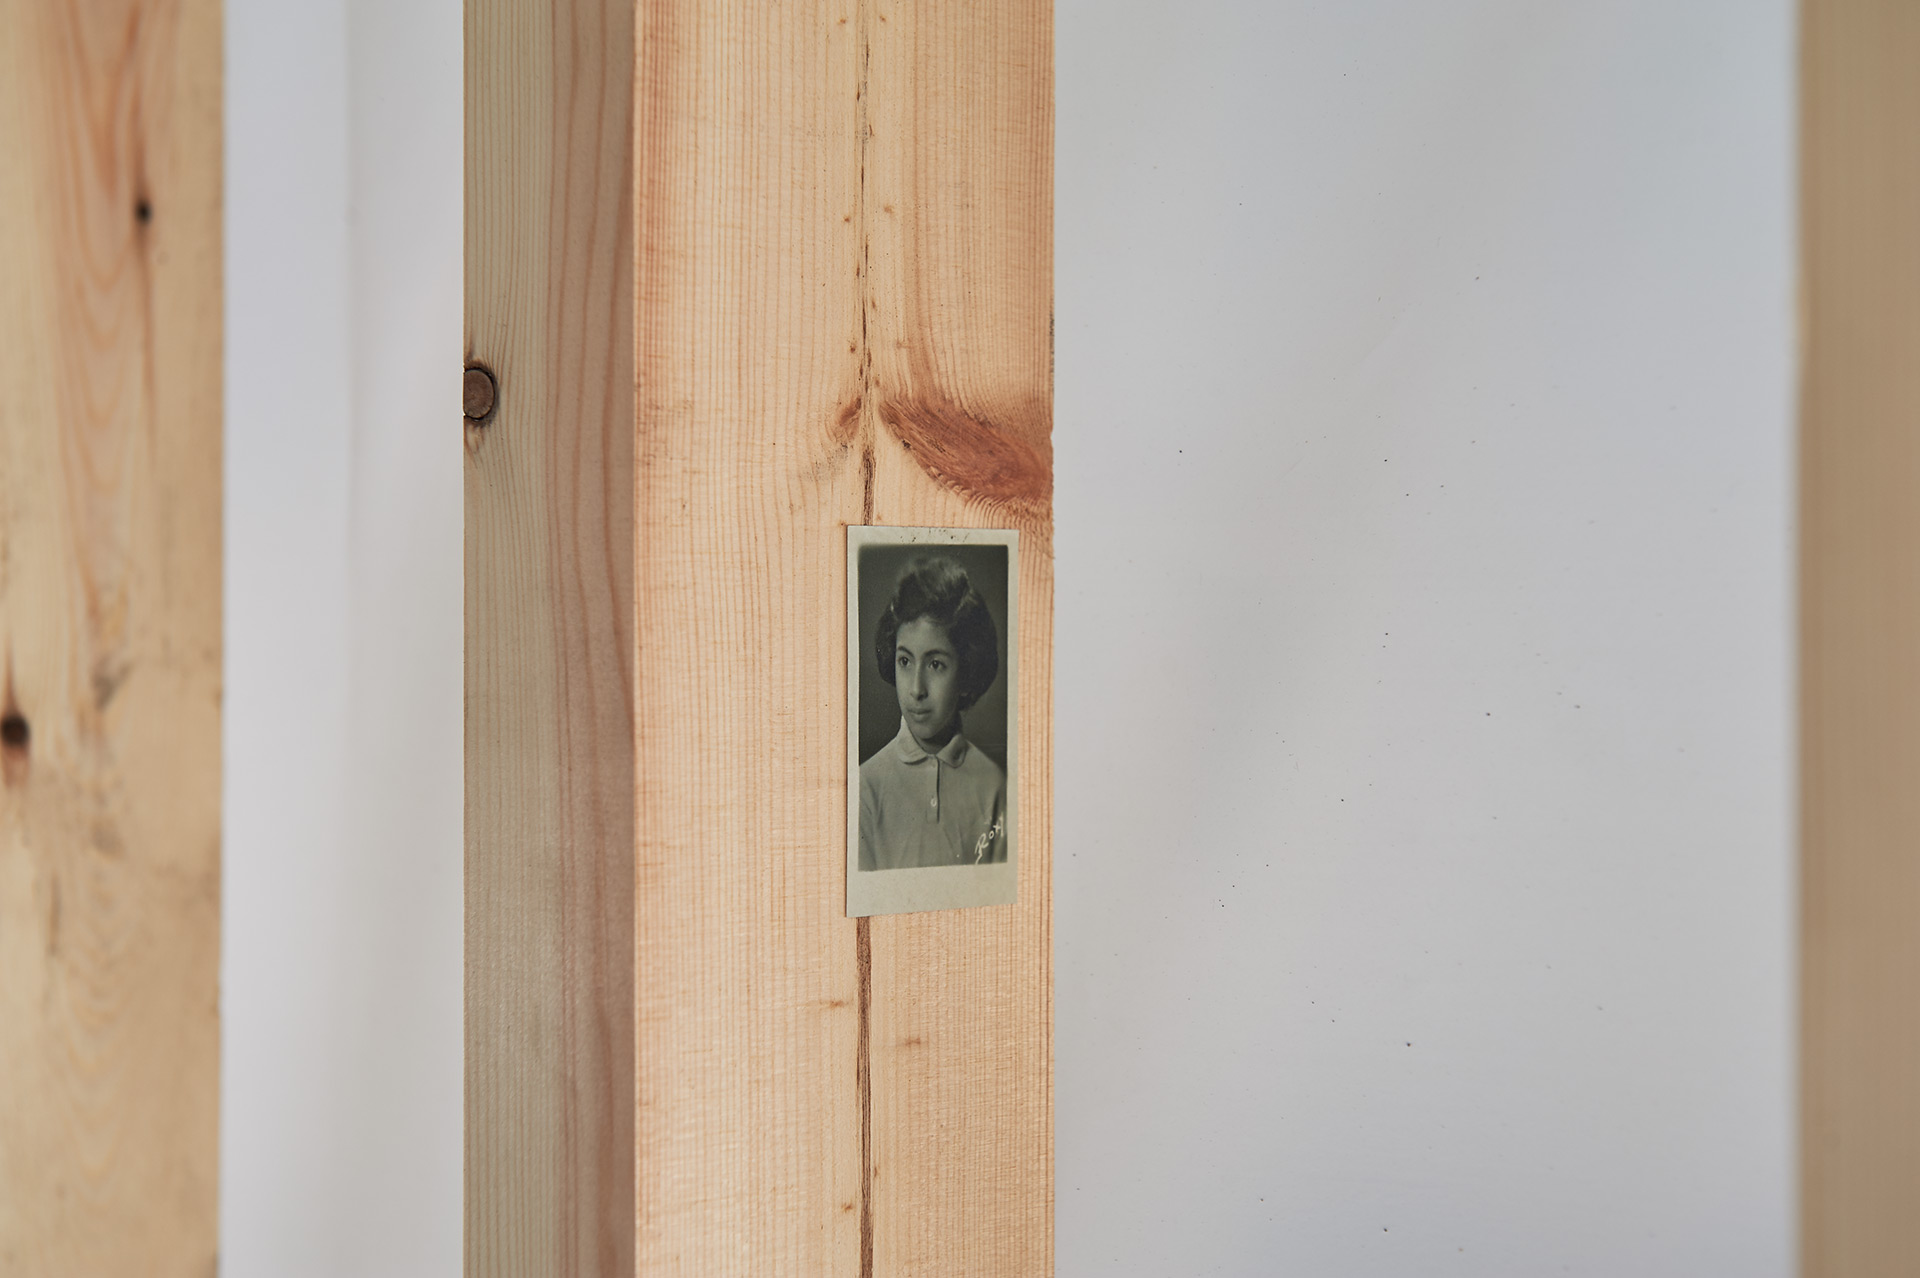 Close up of a wooden wall structure covered with translucent plastic. A small old portrait style photograph of a young child can be seen attached to the wood.